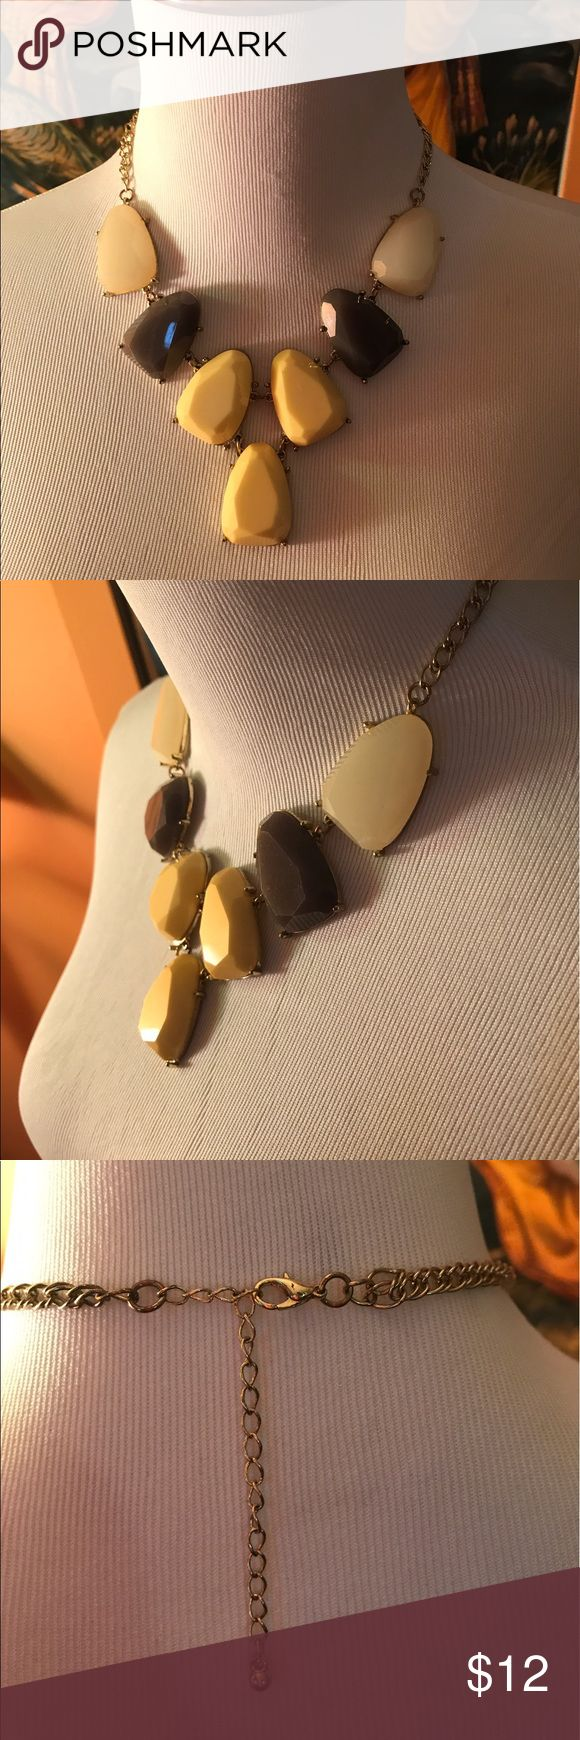 Gray yellow and white statement necklace Gray yellow and white plastic stone statement necklace is absolutely stunning! Looks great in business attire Jewelry Necklaces